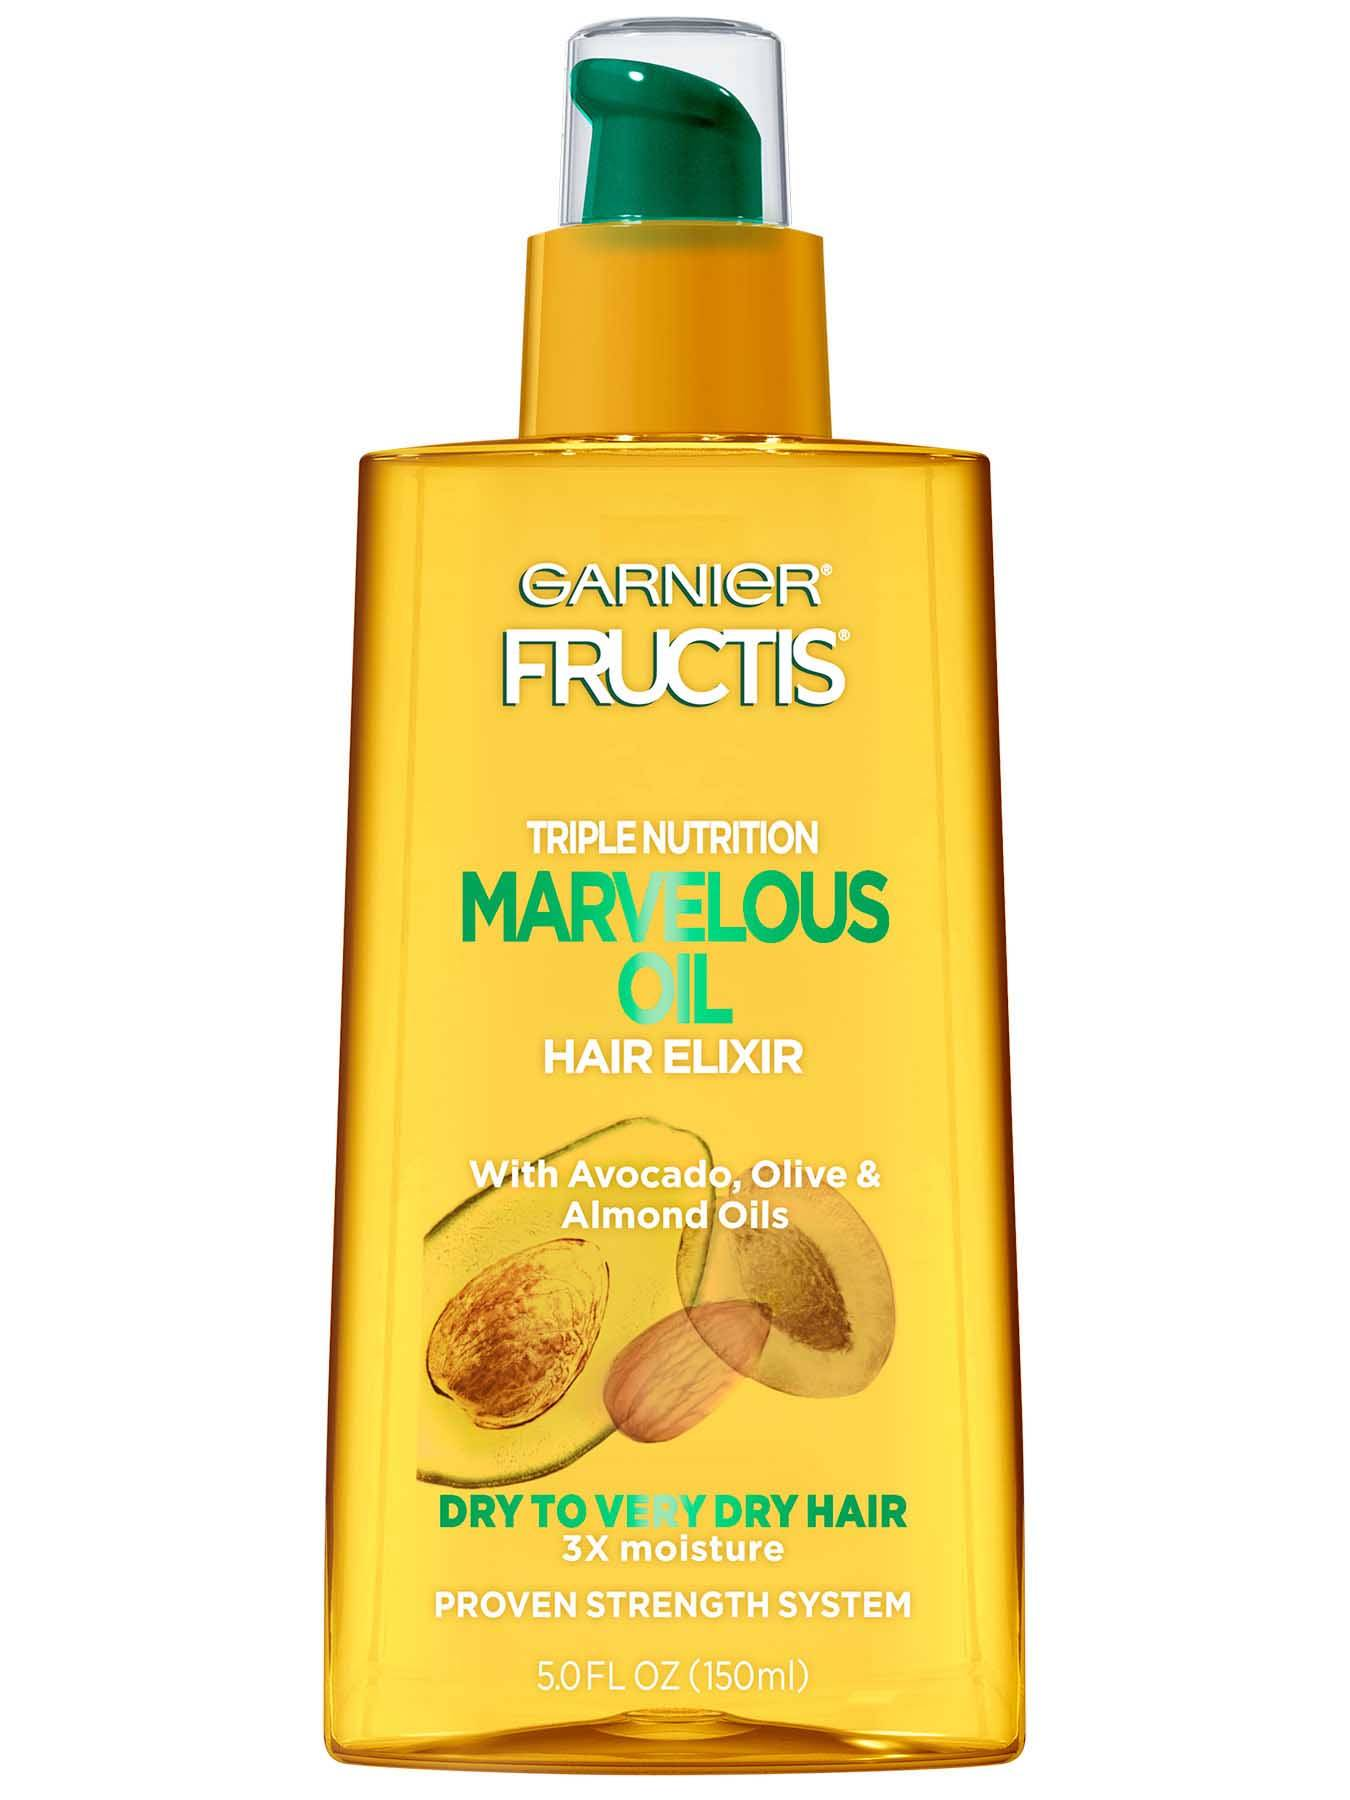 Marvelous Oil Hair Elixir - Dry Hair Treatment - Garnier